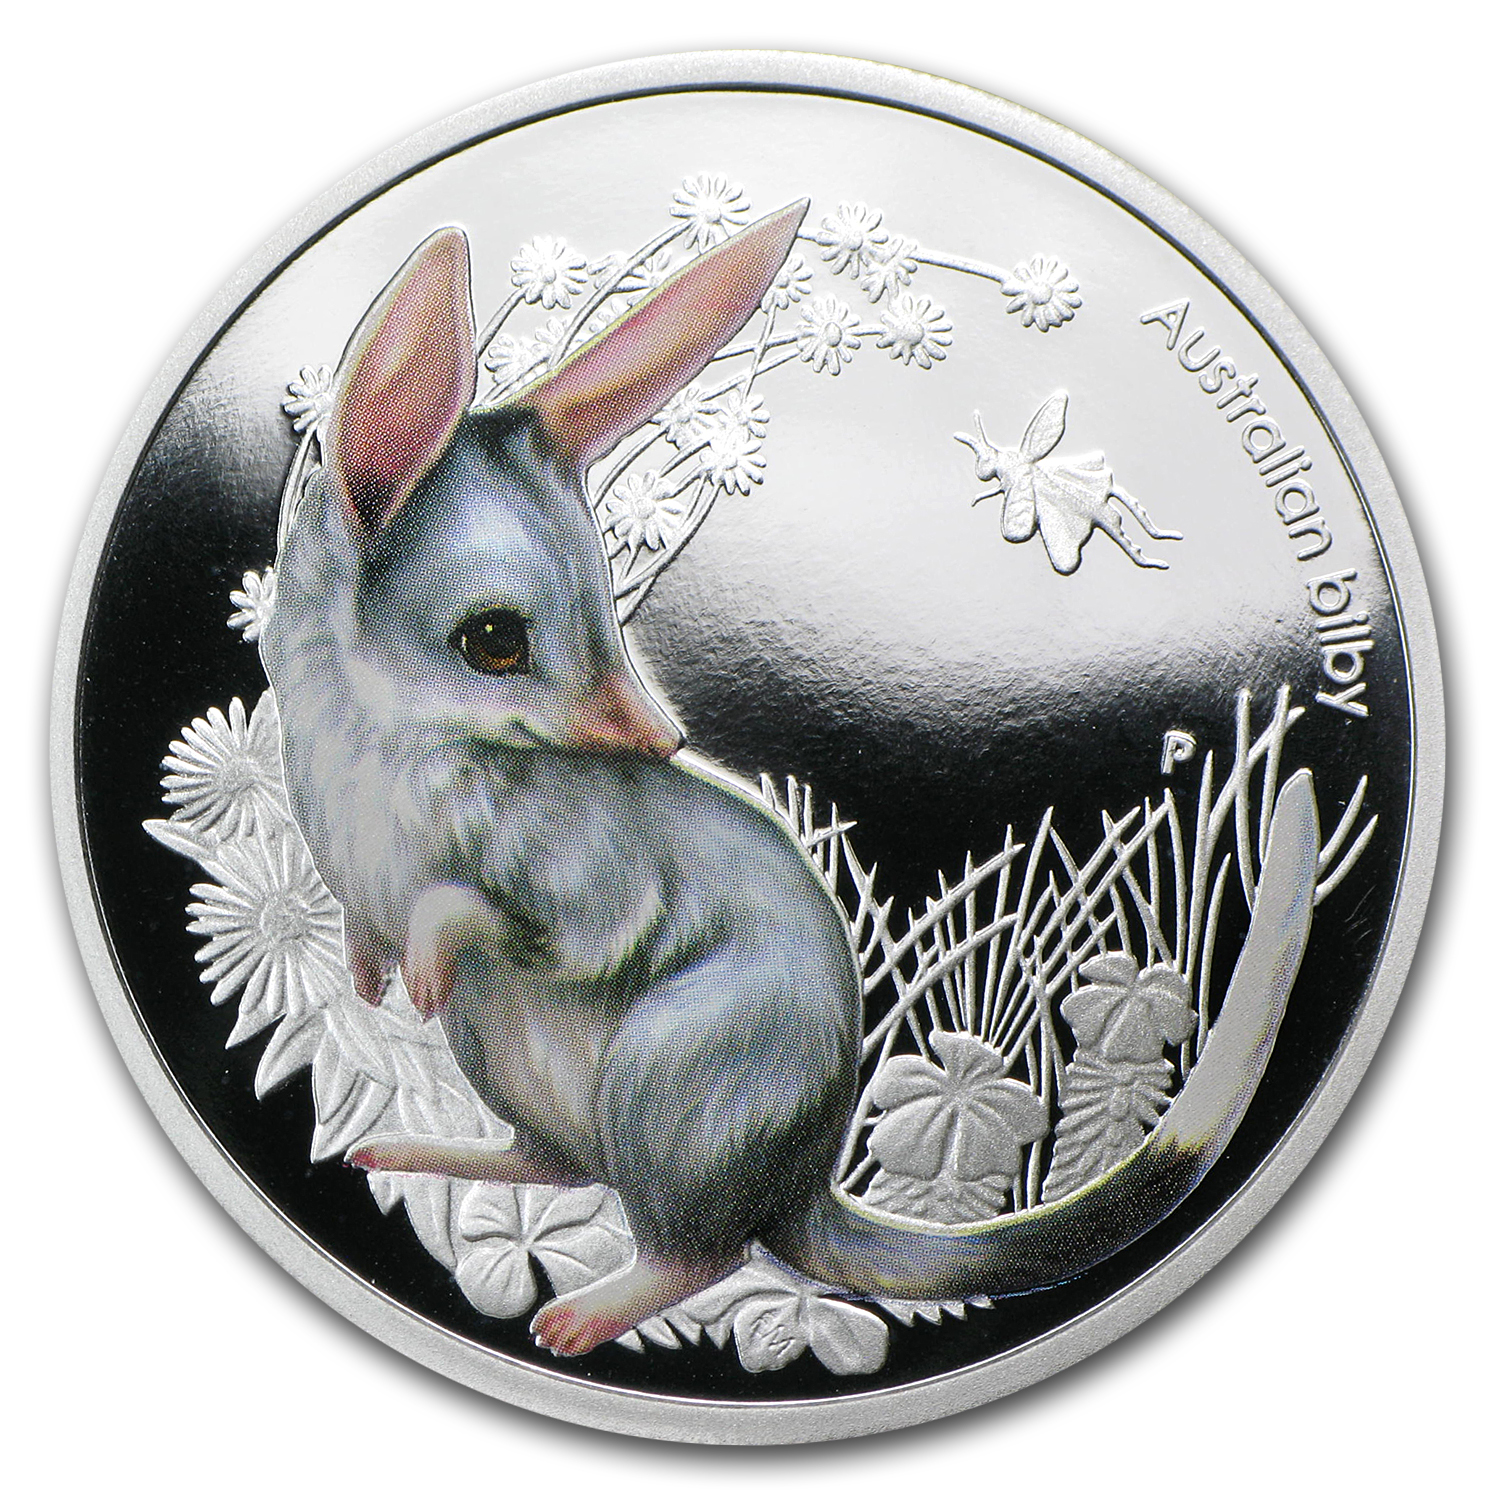 2011 1/2 oz Proof Silver Australian Bush Babies Bilby